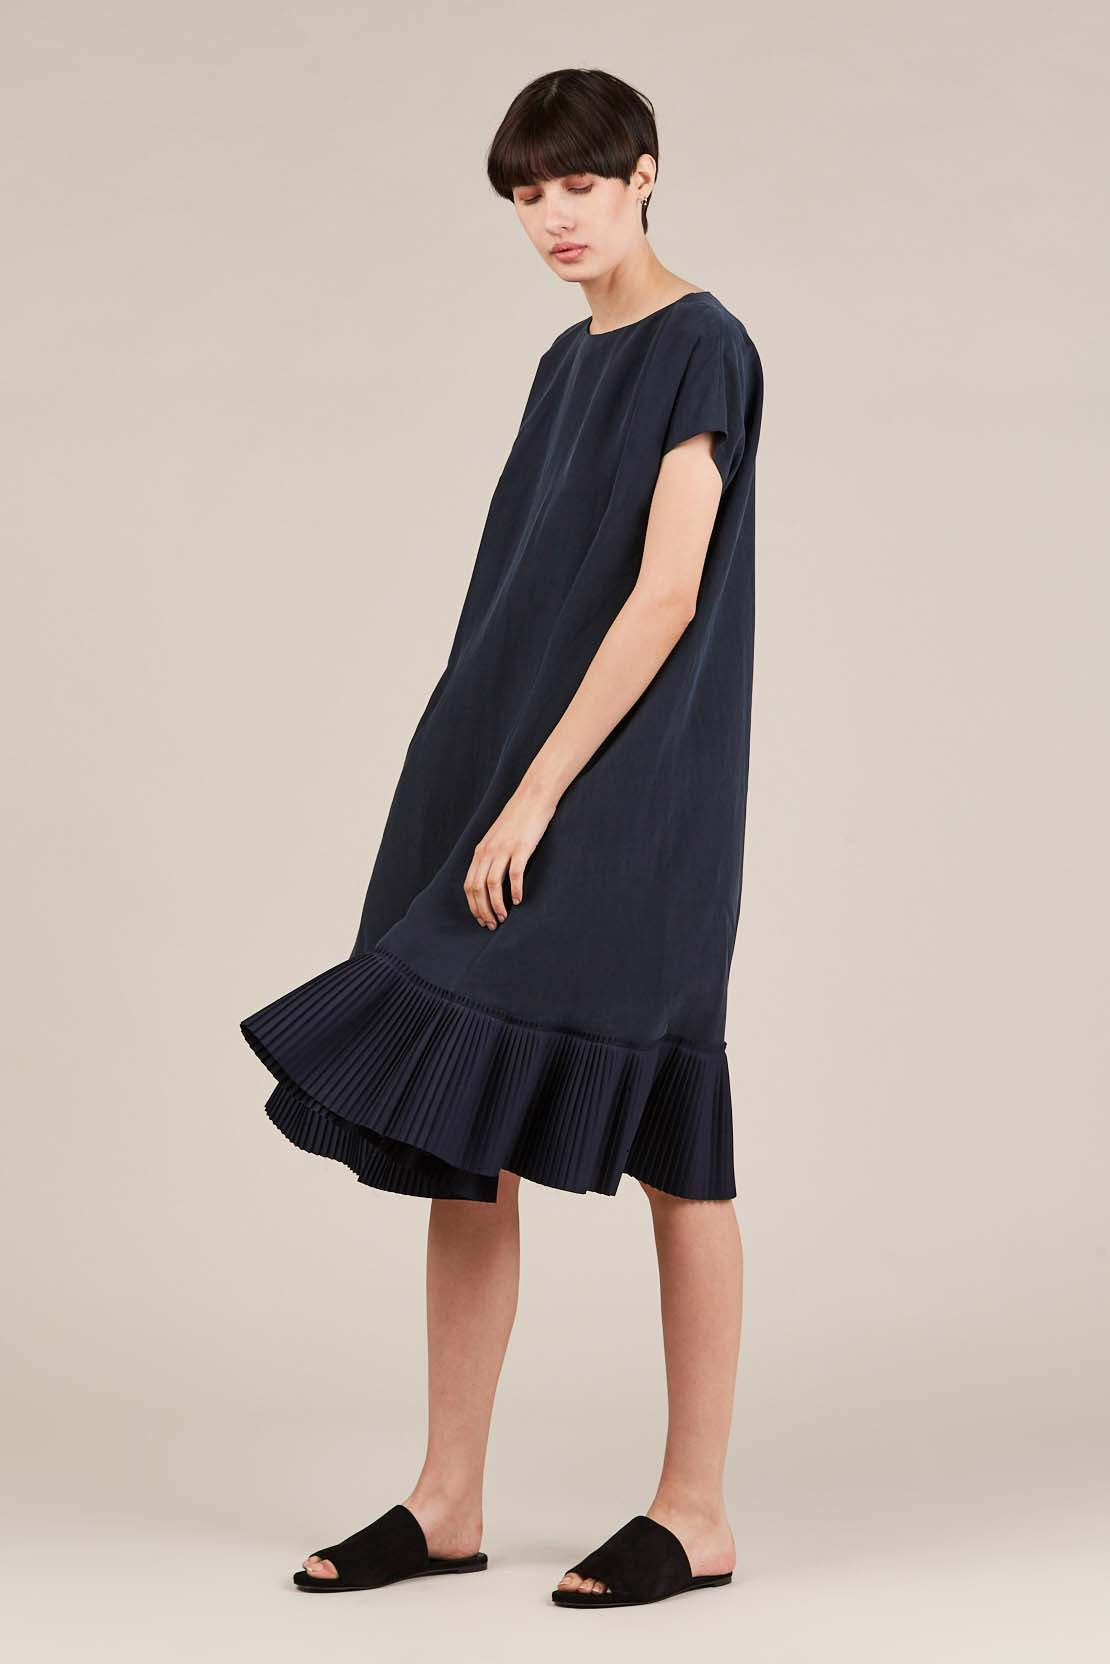 Mama silk dress, Navy by Samuji